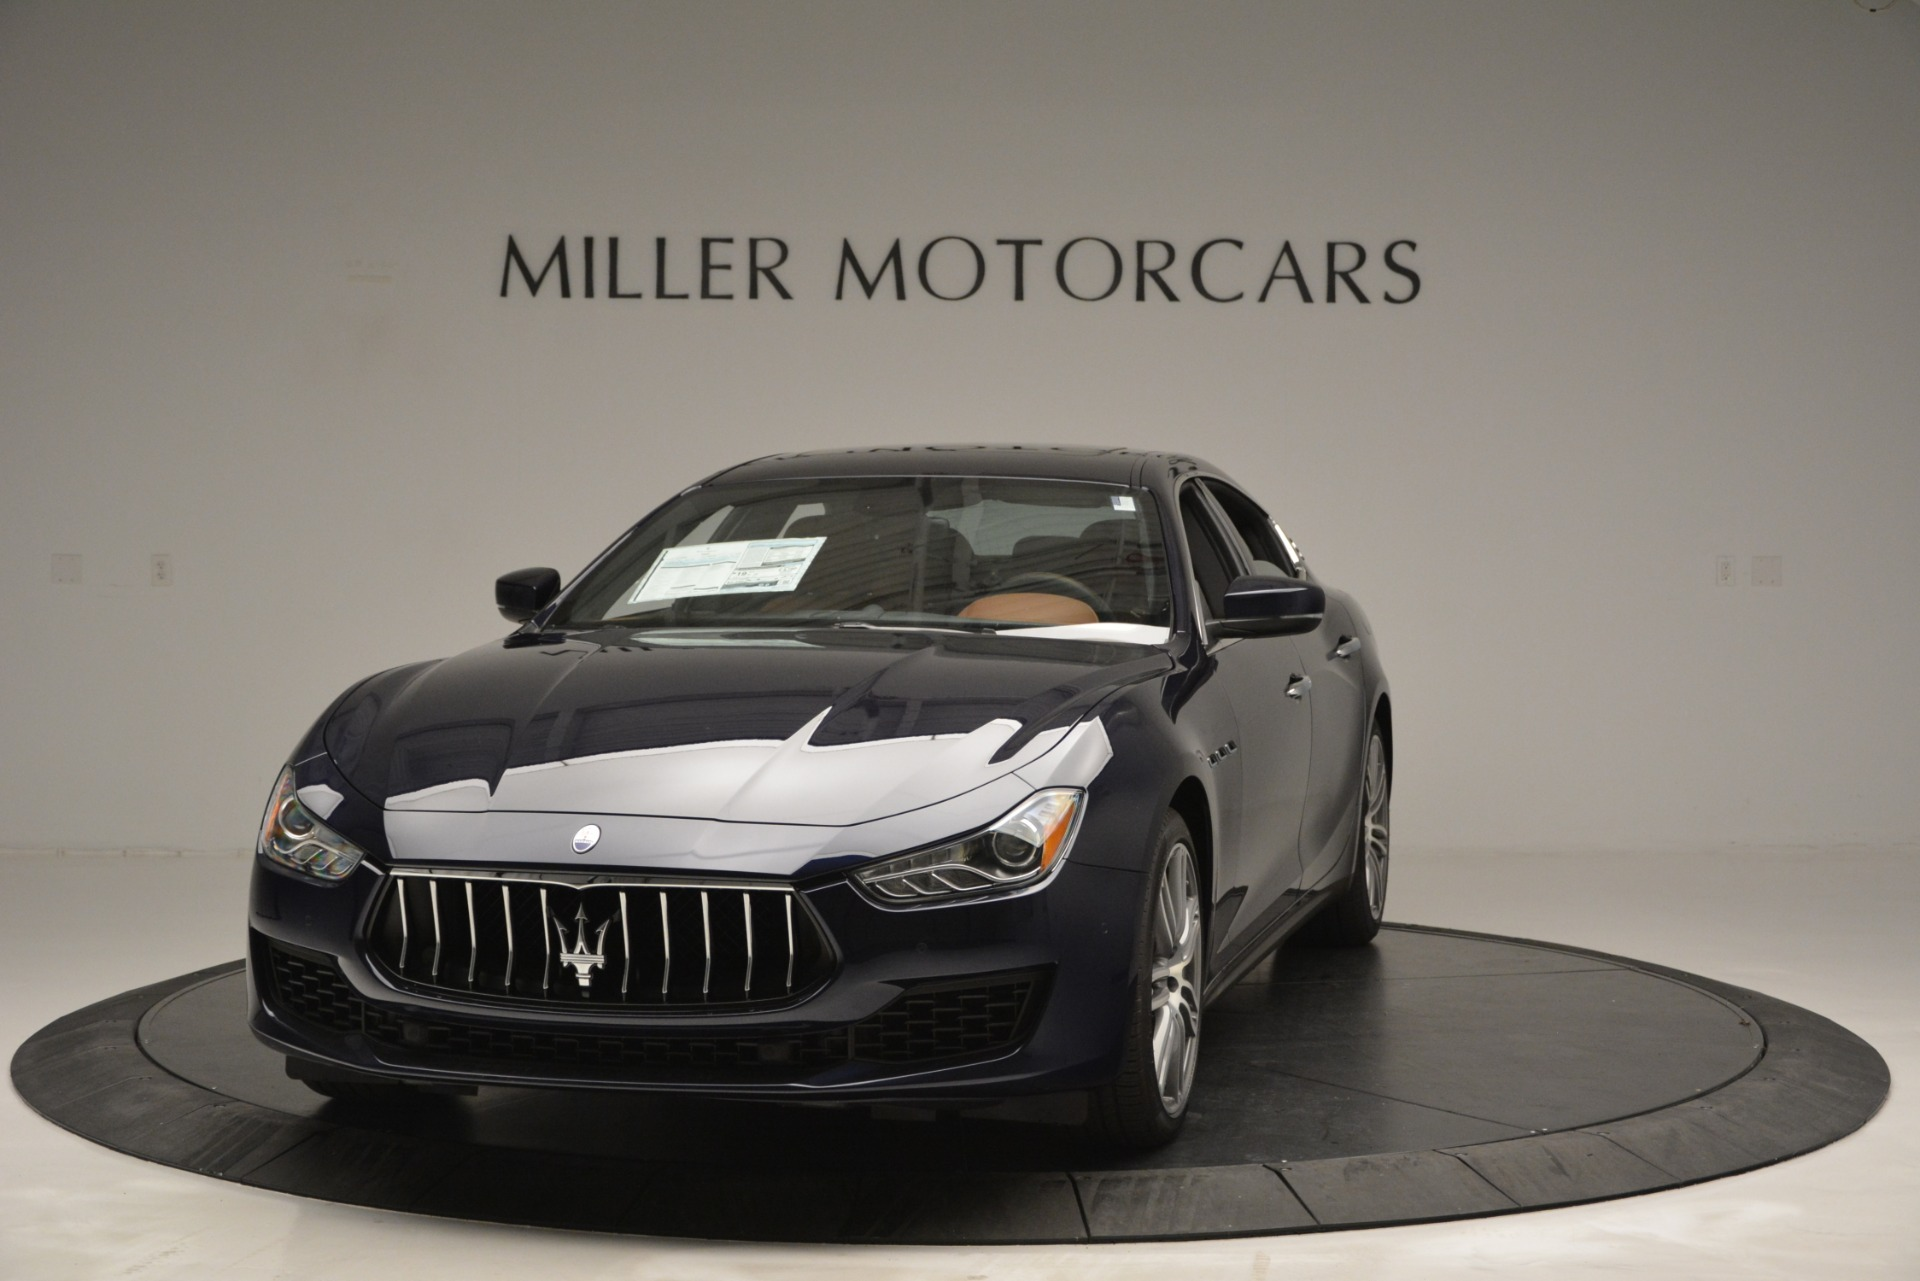 Used 2019 Maserati Ghibli S Q4 for sale Sold at Bentley Greenwich in Greenwich CT 06830 1